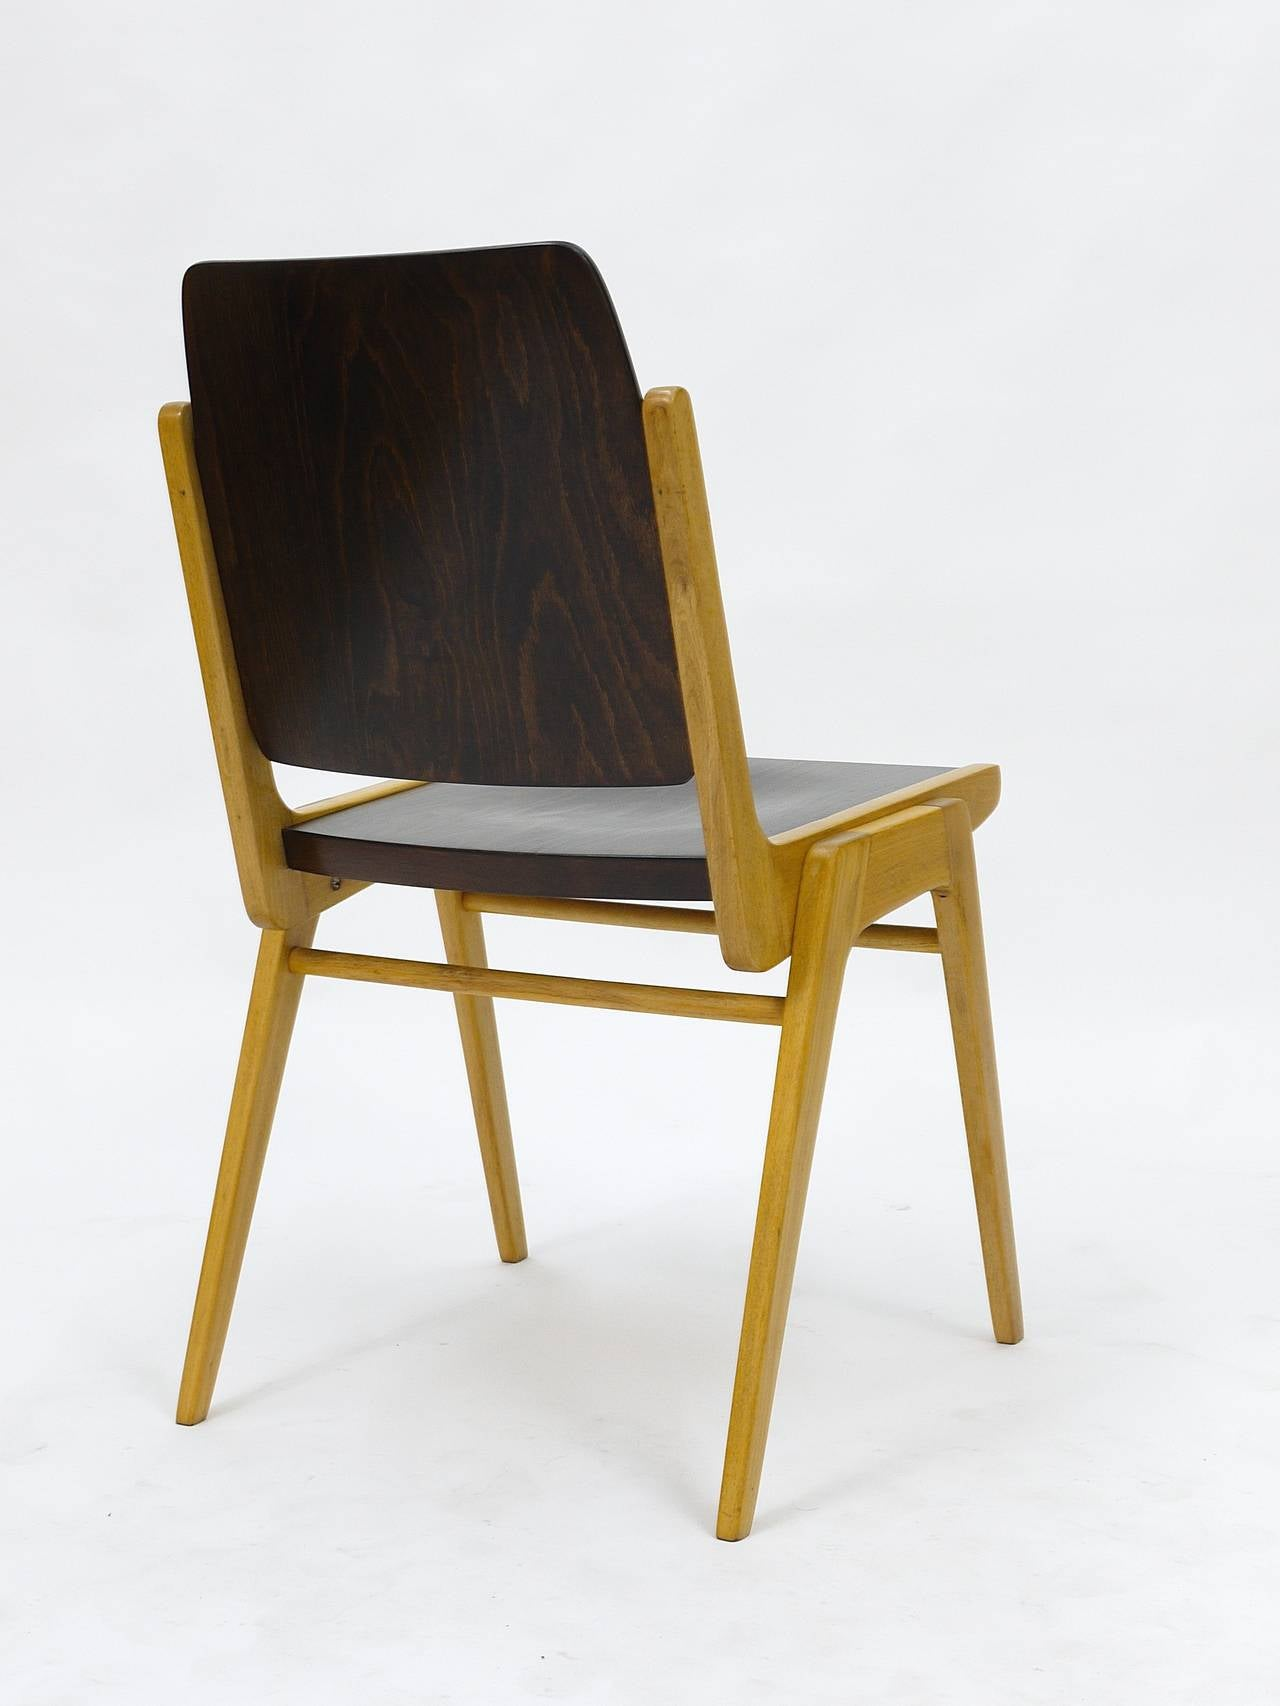 Up to 12 Austro Chair Stacking Chairs by Franz Schuster